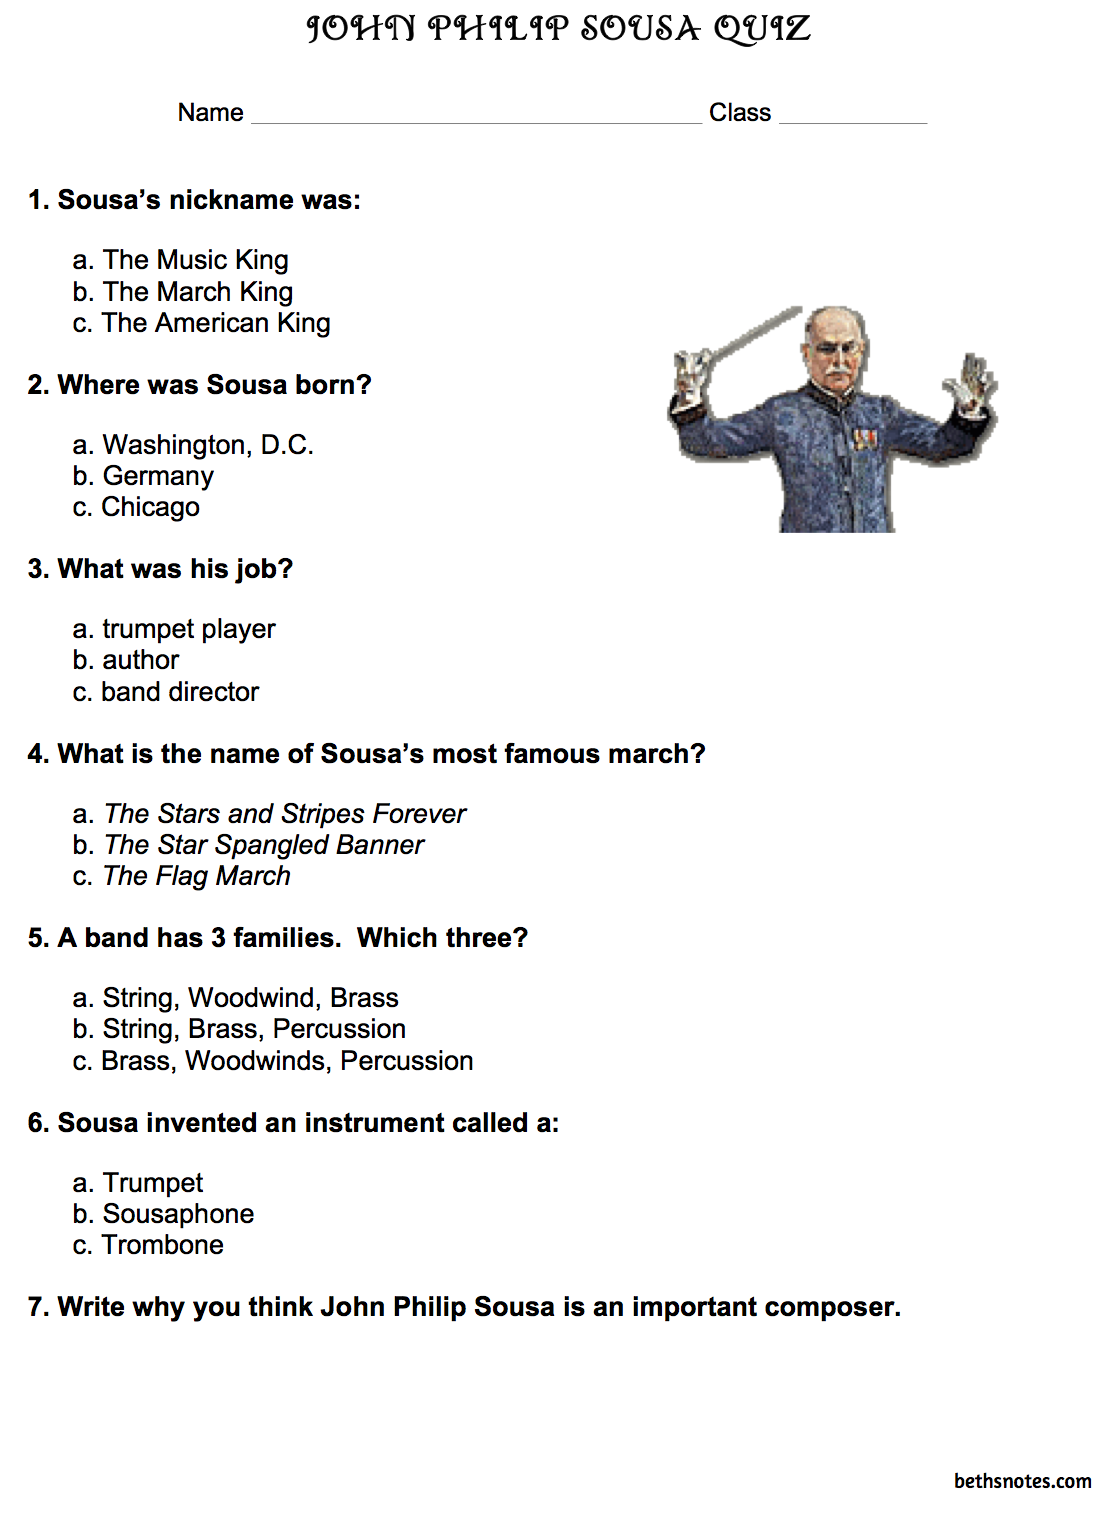 Worksheets Music Composer Worksheets john philip sousa quiz word search music teacher resources search